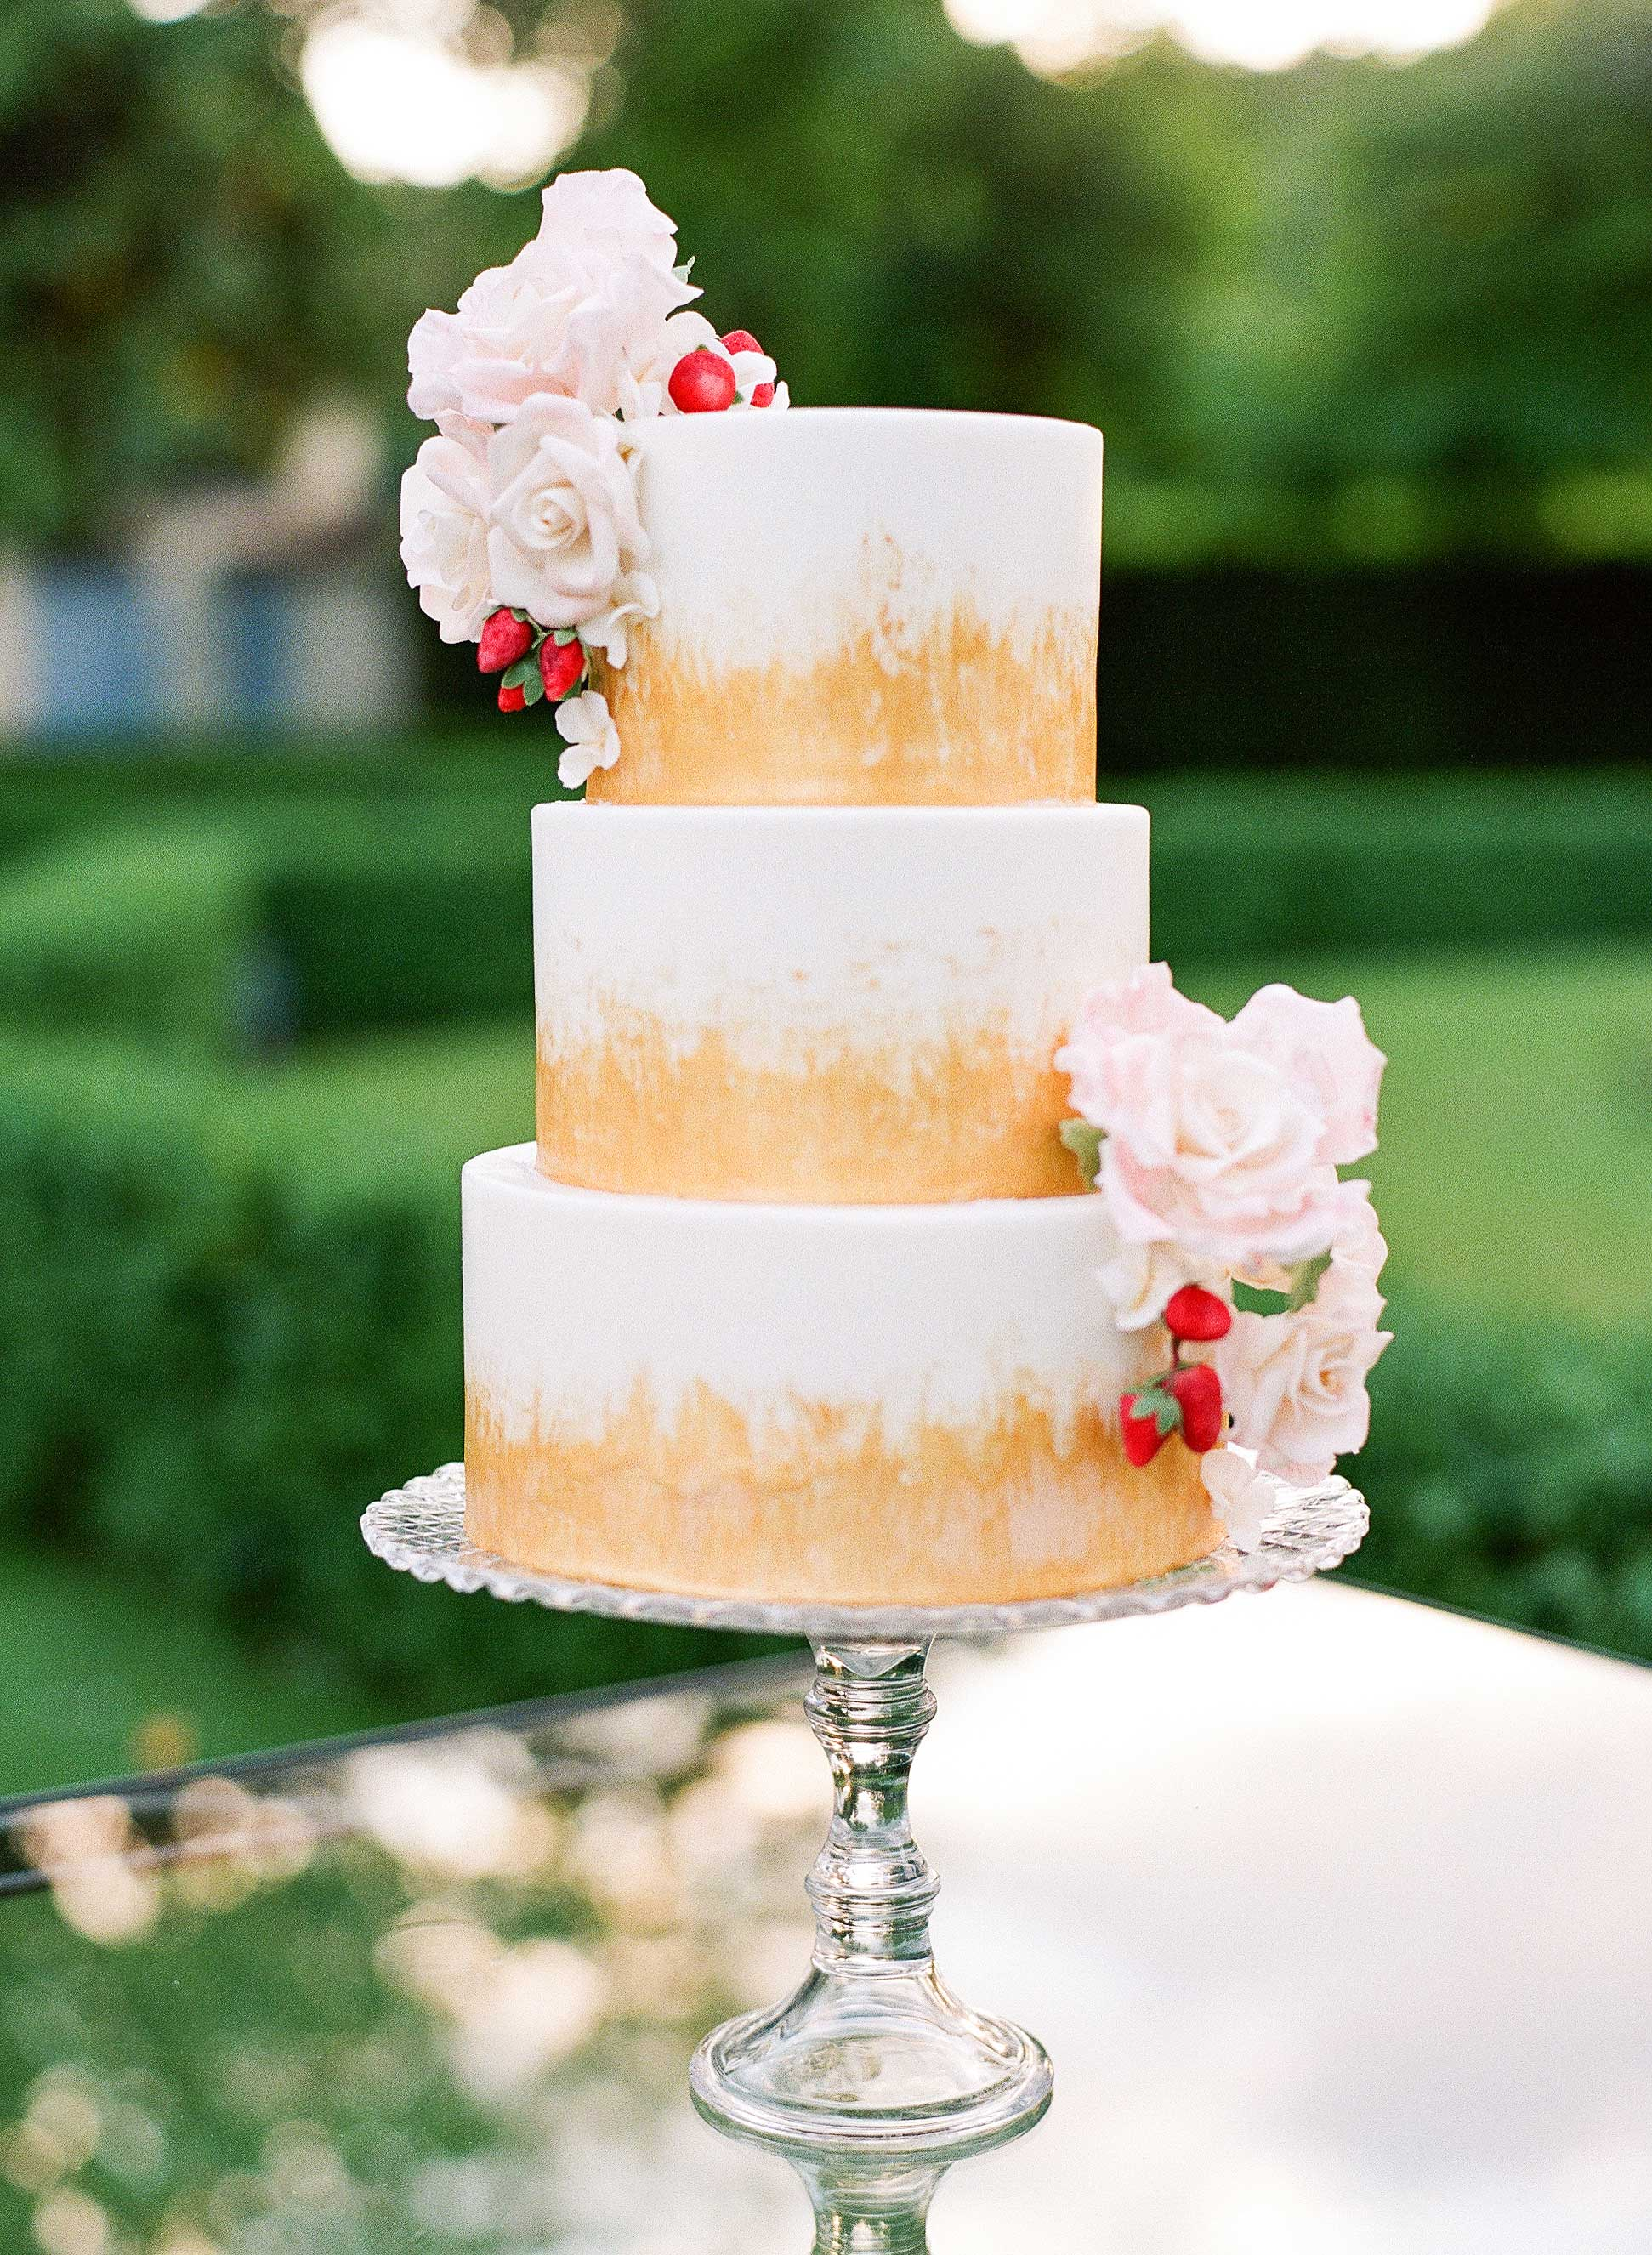 50 Beautiful Wedding Cakes That Are (Almost!) Too Pretty to